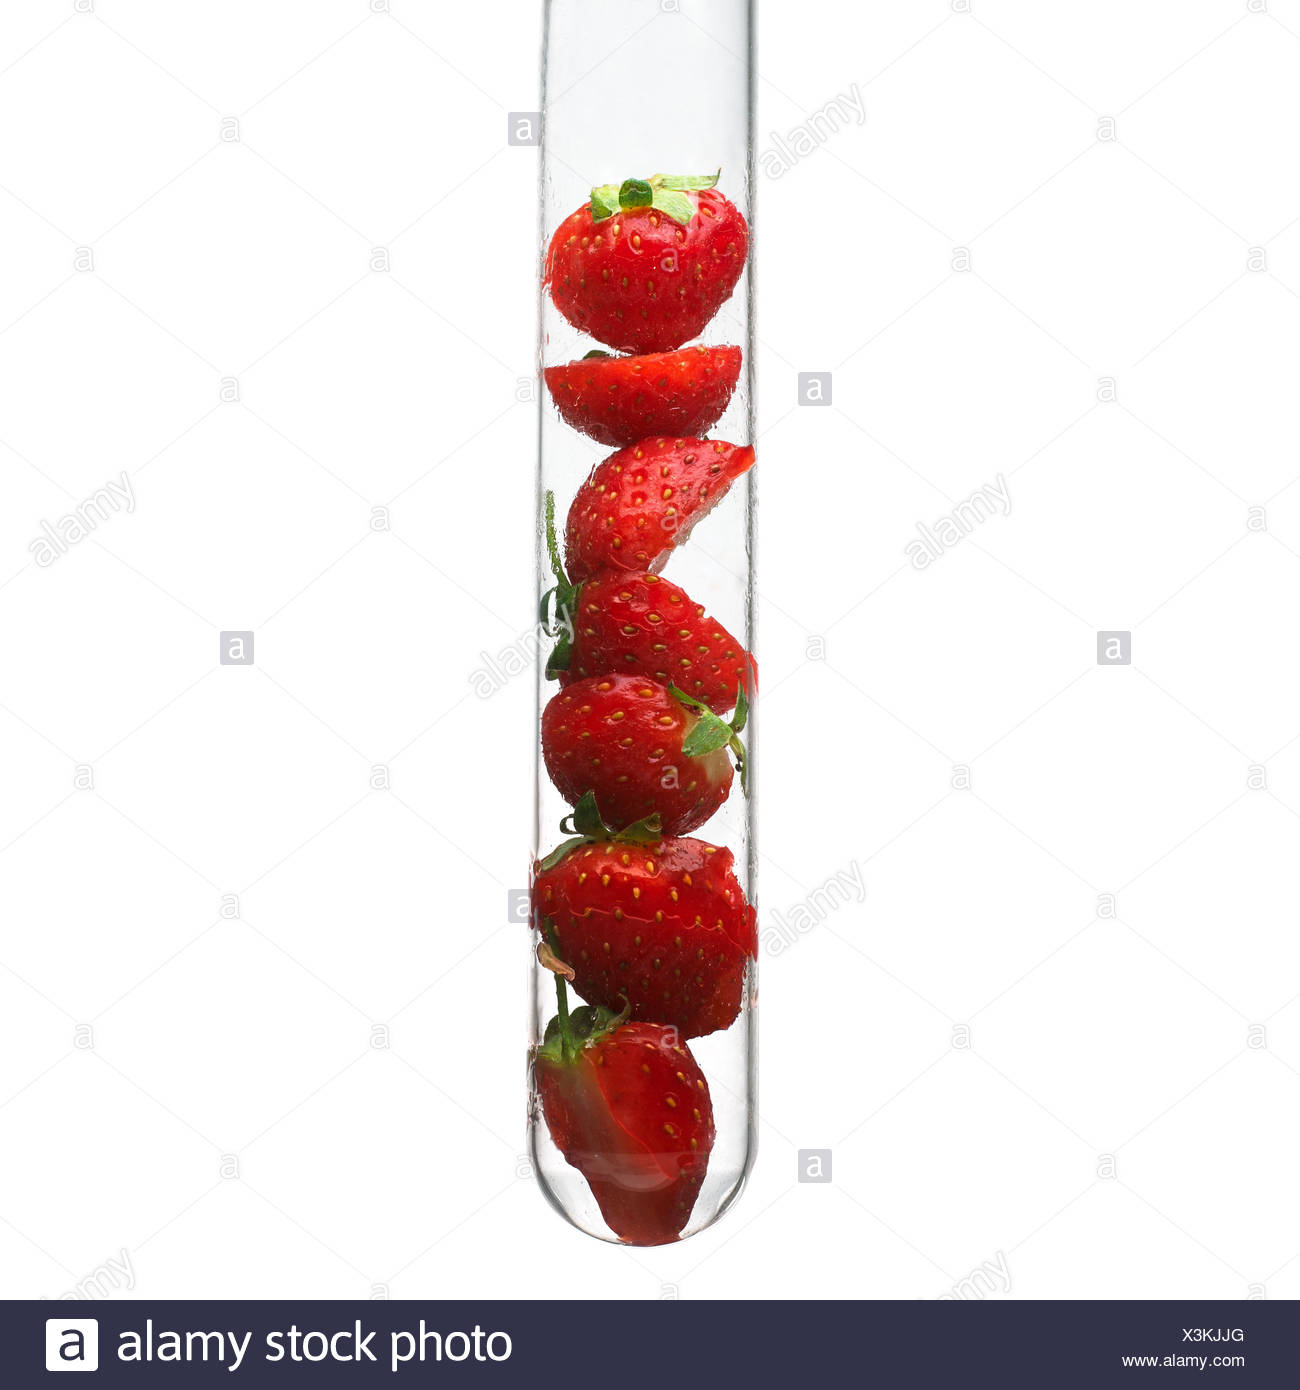 Strawberries in a test tube - Stock Image